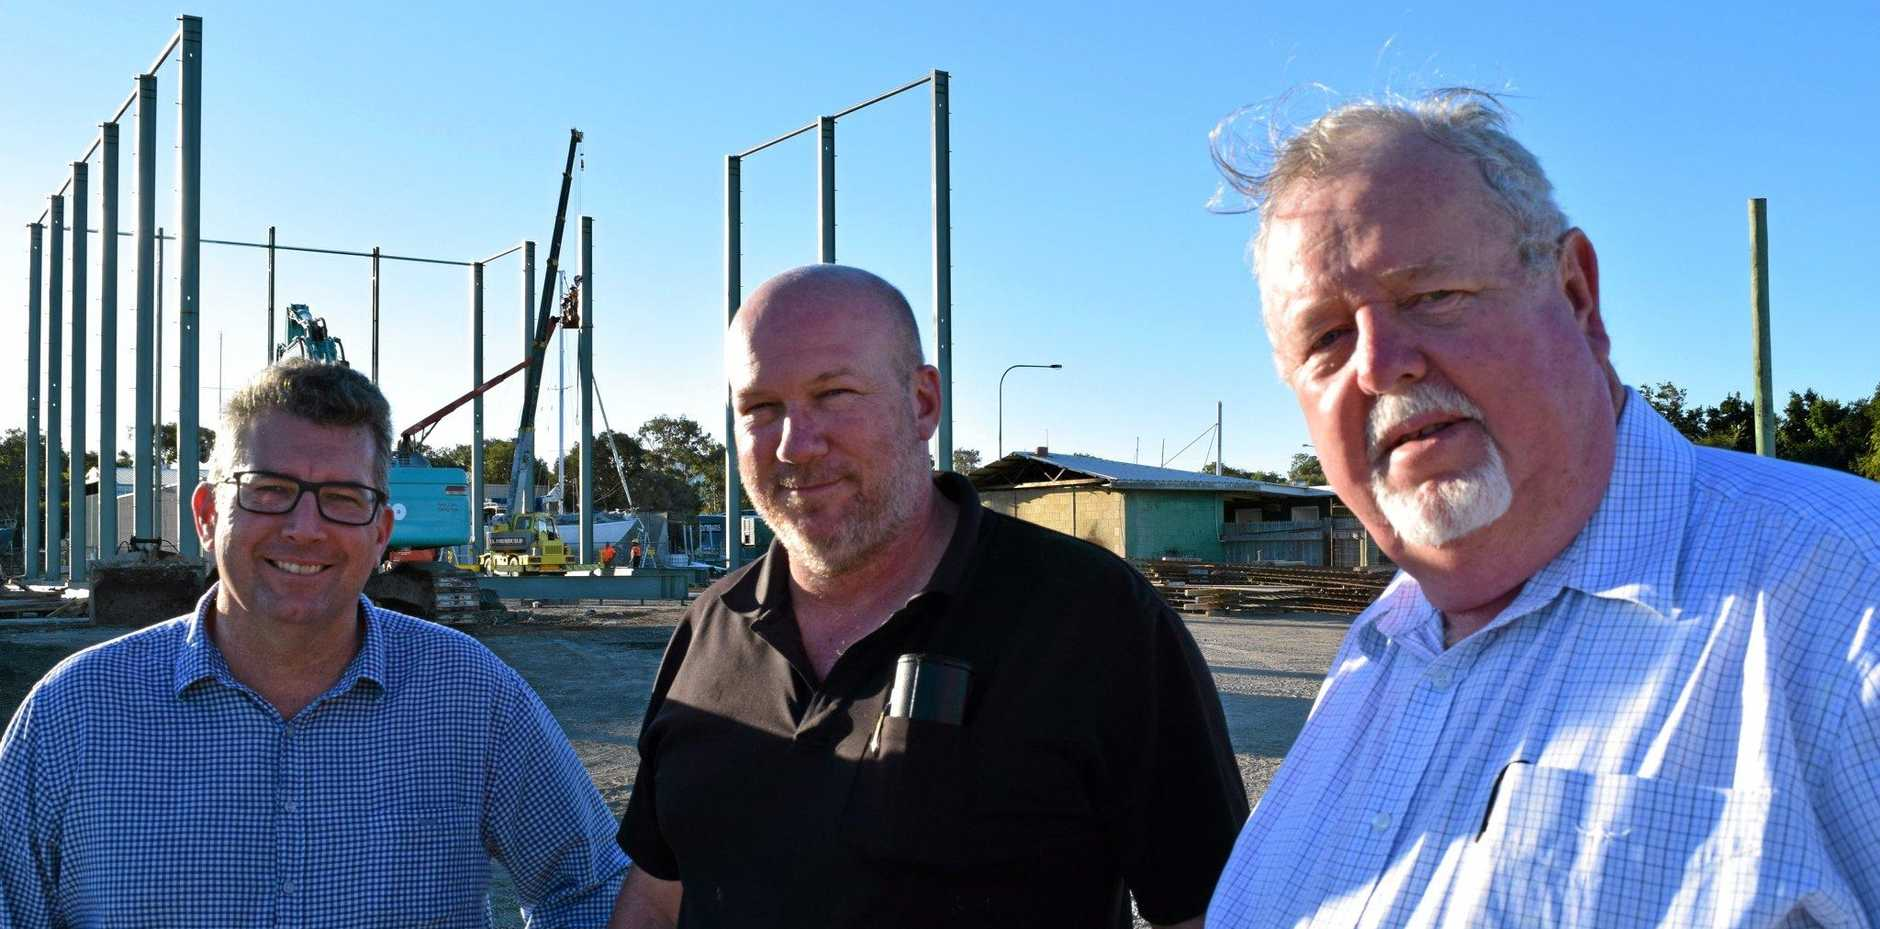 BUILDING CONFIDENCE: Federal member for Hinkler Keith Pitt (L), business owner Steve Murphy and Senator Barry O'Sullivan at the travel lift construction site in Urangan.